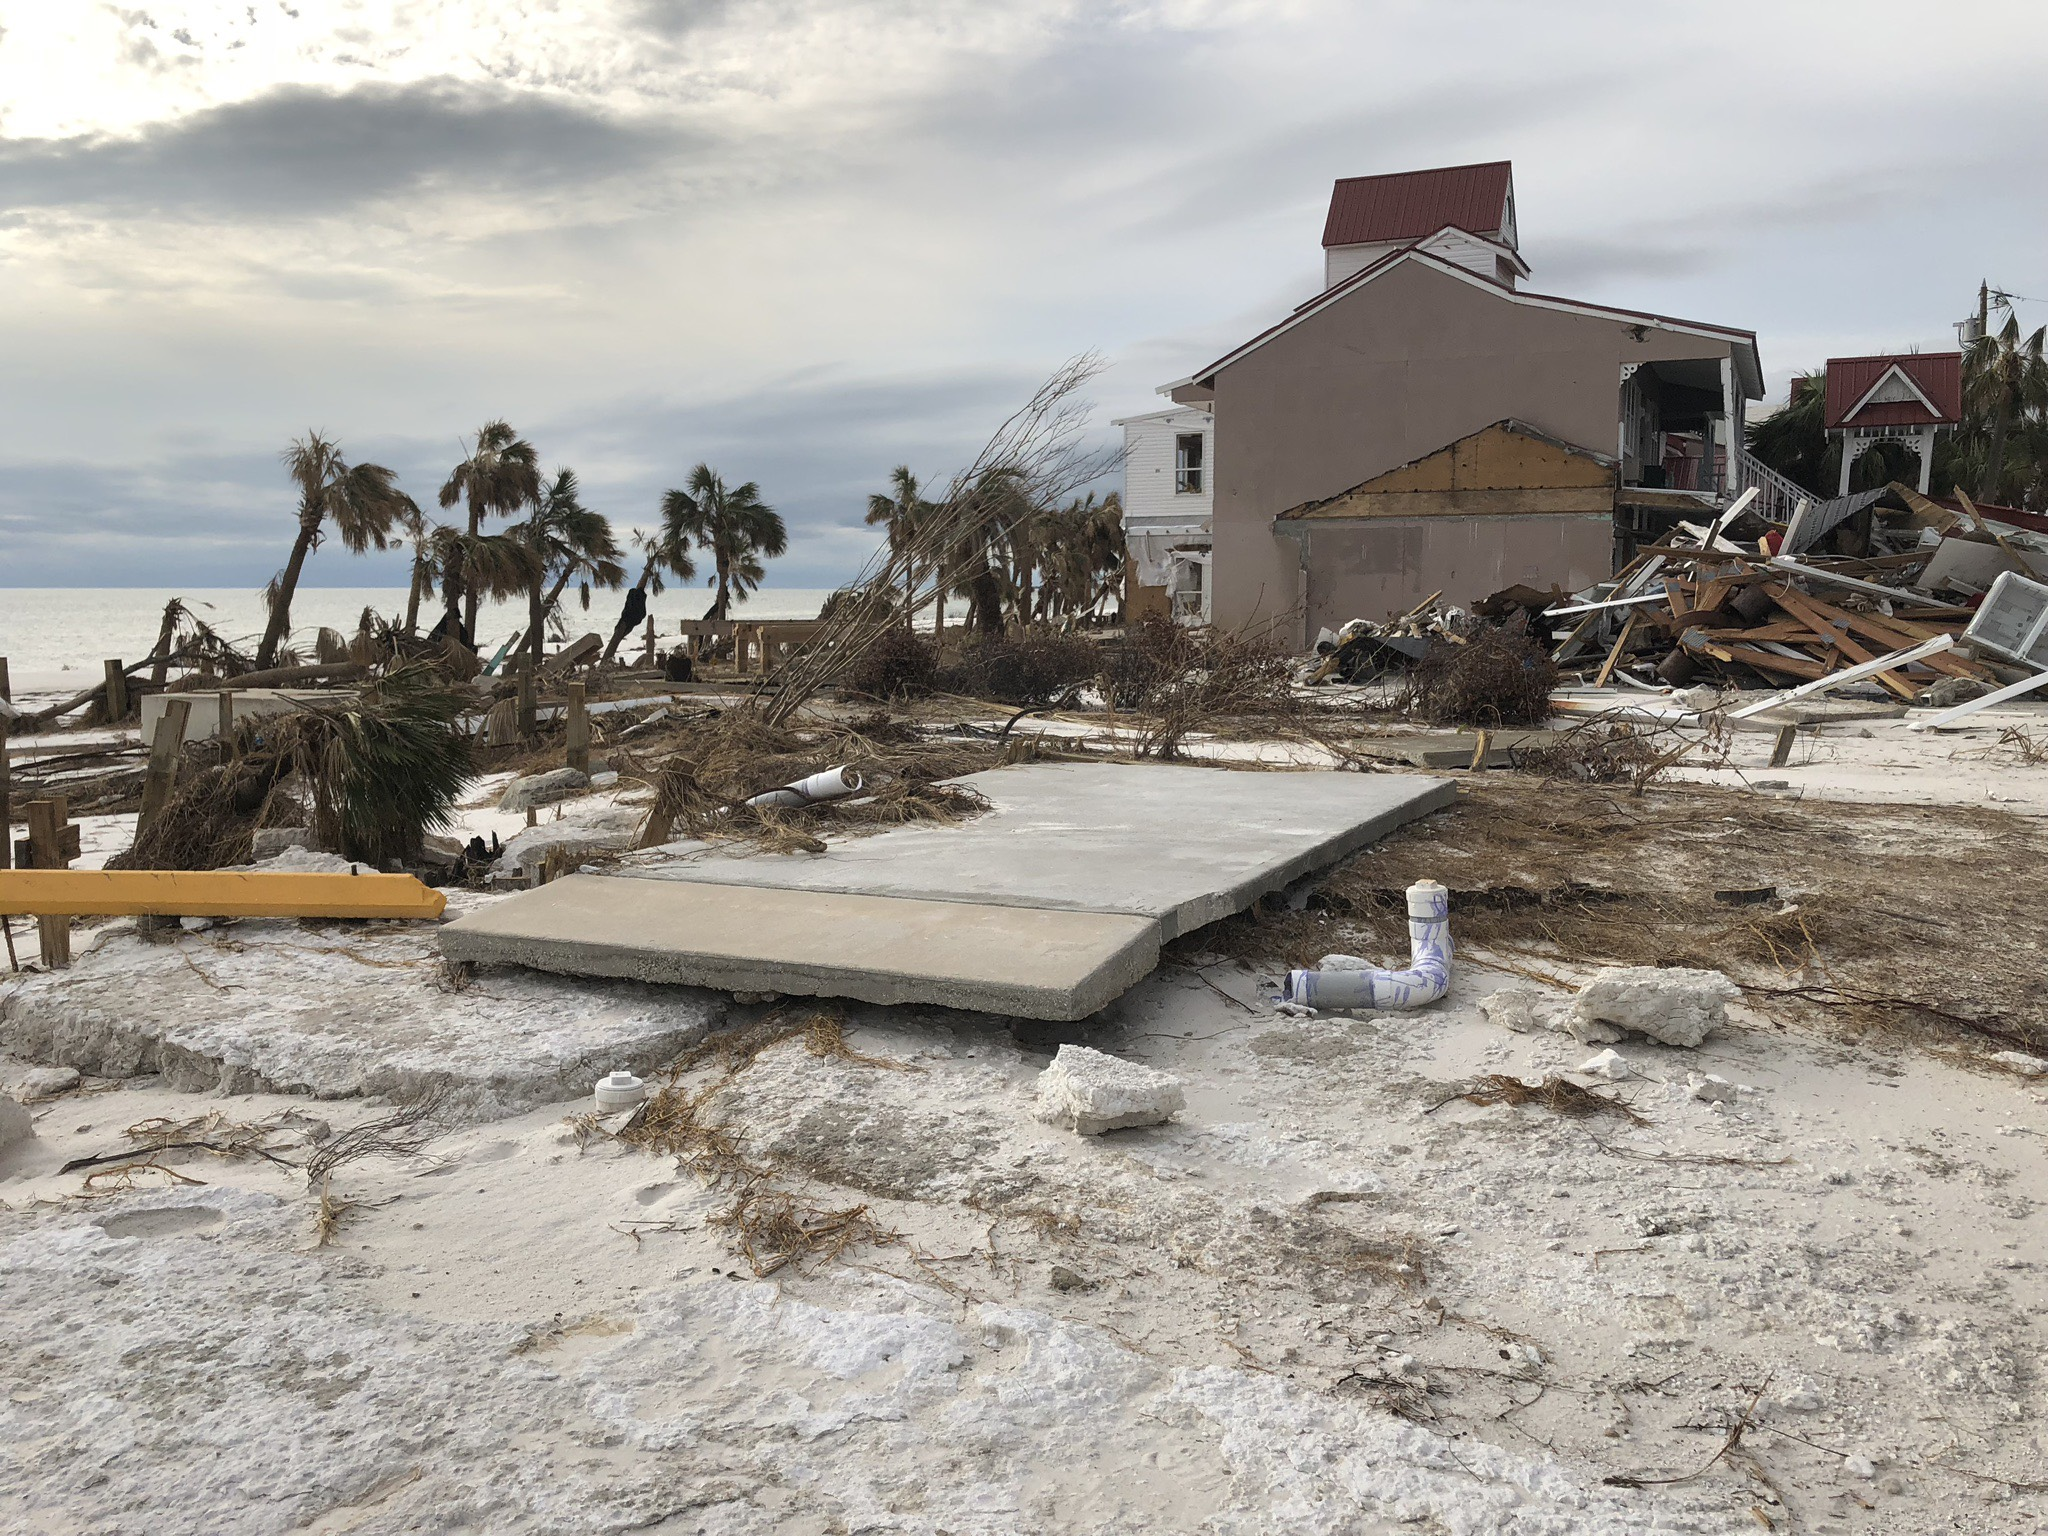 Eyewitness Report: Hurricane Michael Recovery Efforts